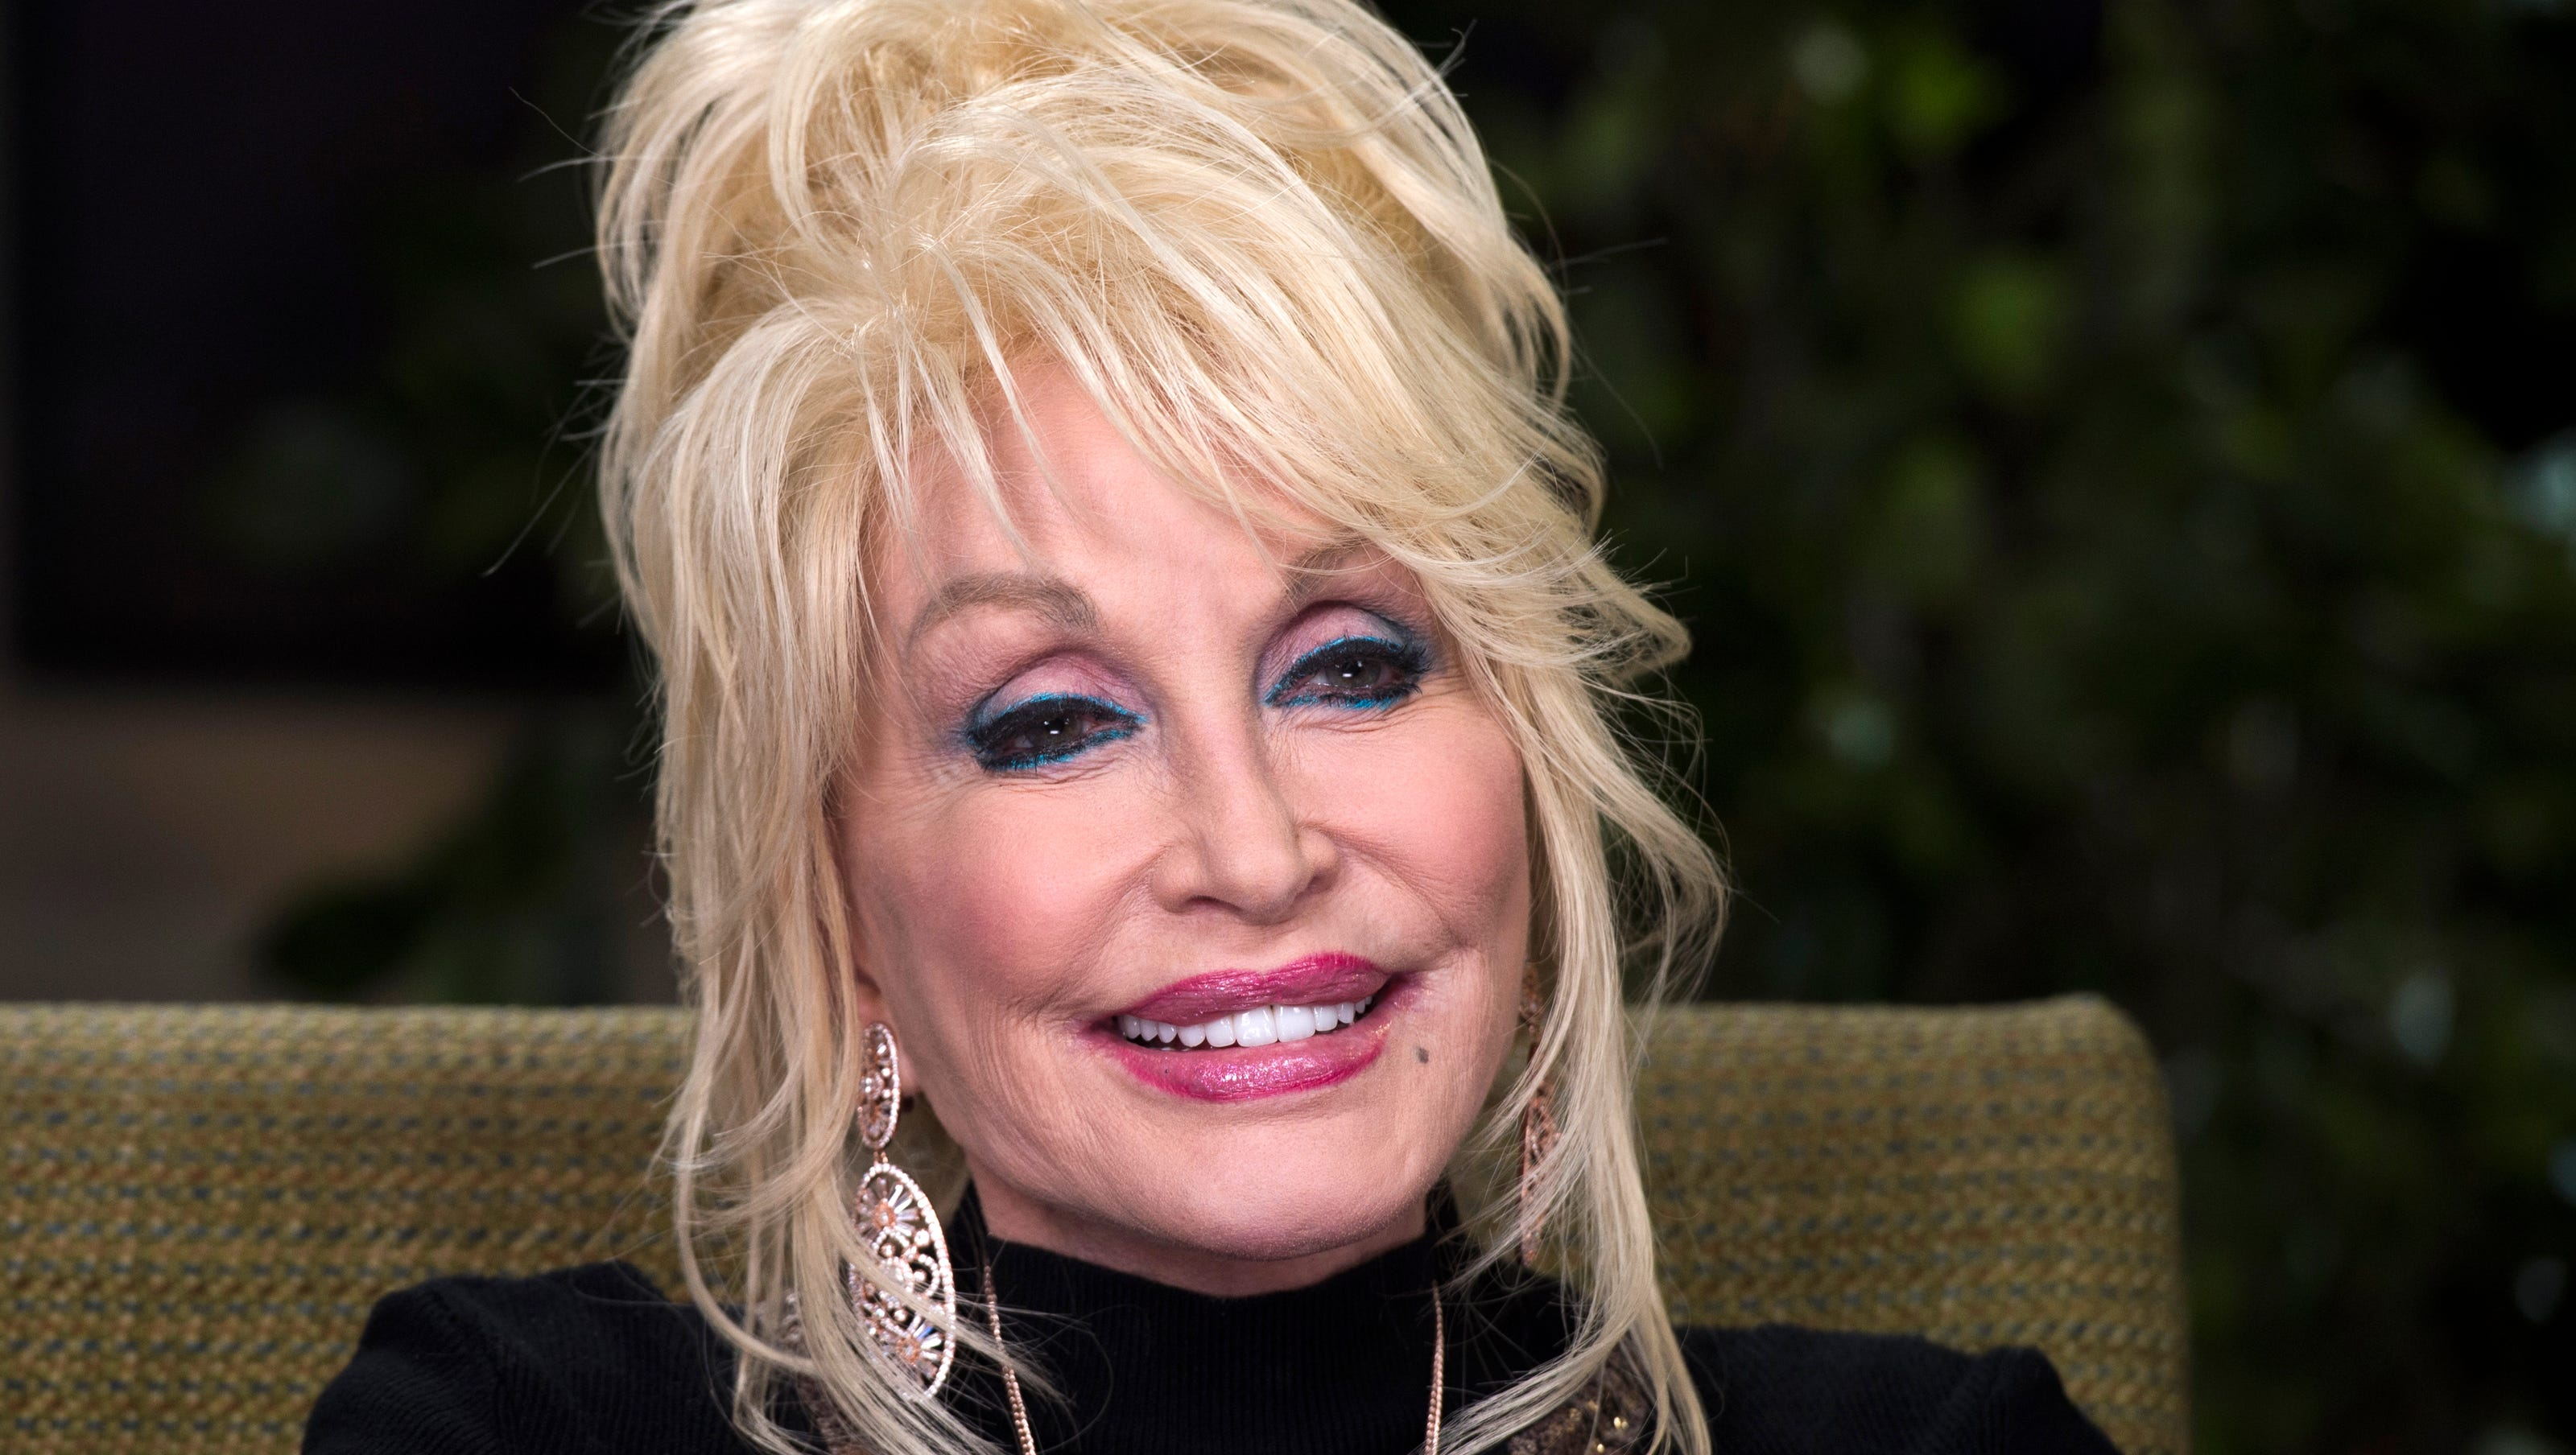 Dolly Parton: Dolly Parton Gives Updates On 2019 Netflix Series, '9 To 5